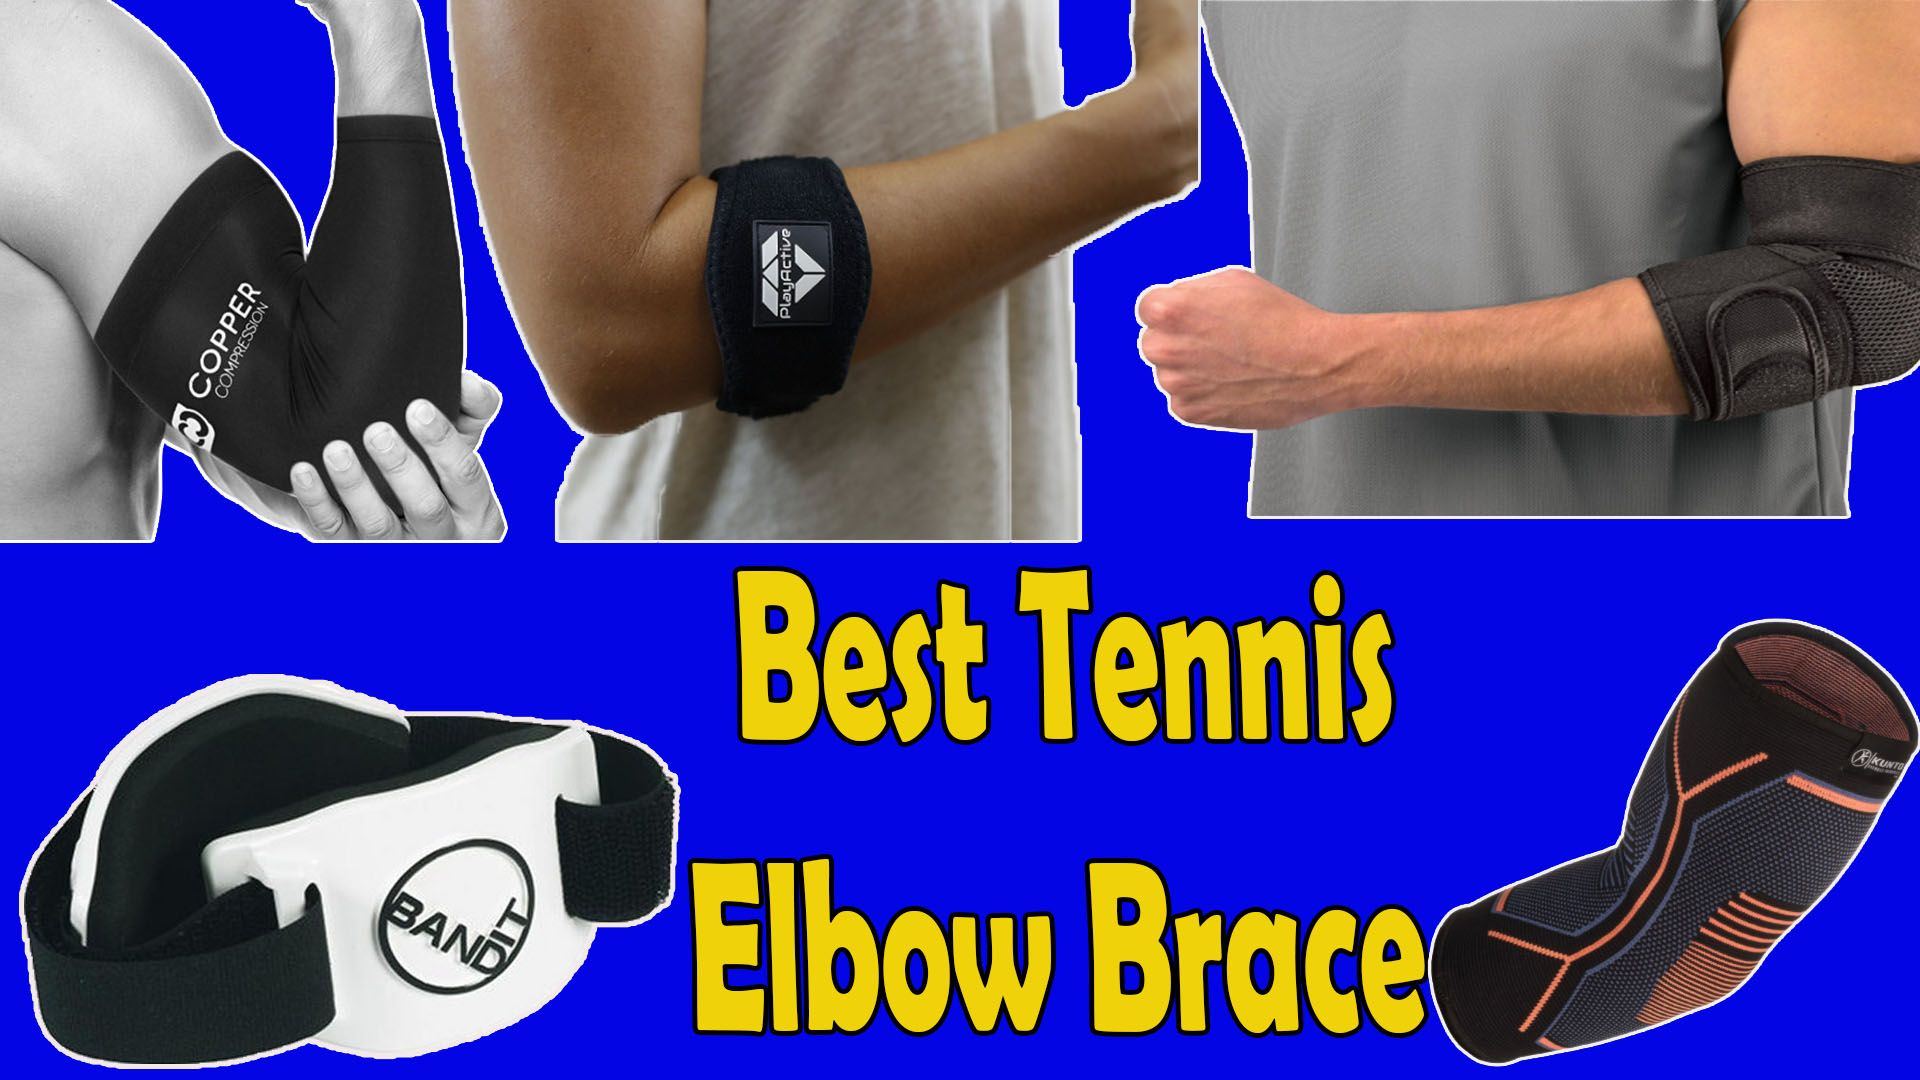 best tennis elbow brace Elbow braces, Tennis elbow brace